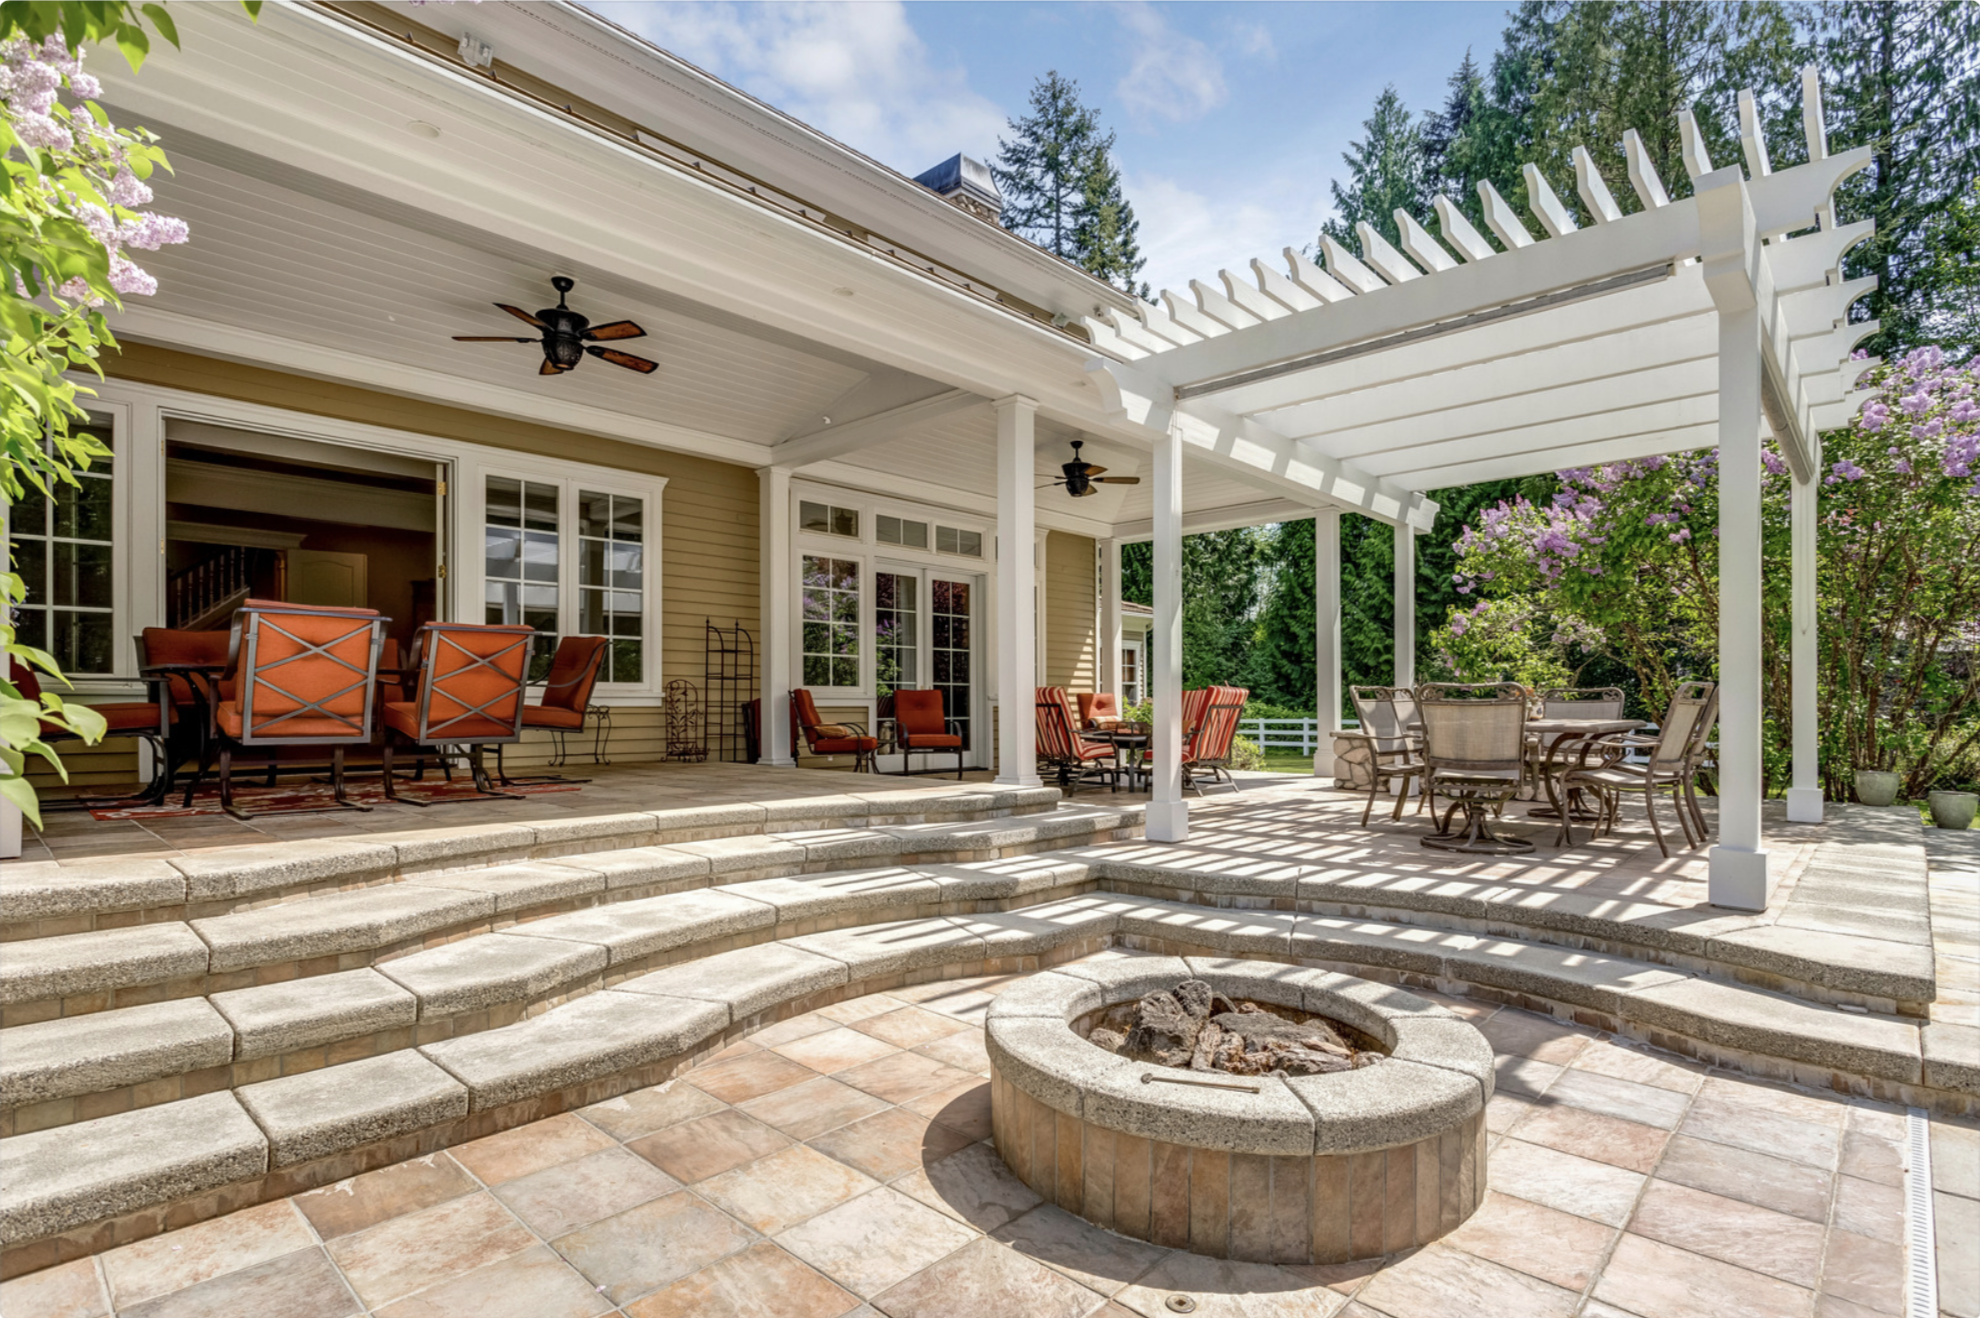 HOW TO GET THE BEST RESULTS FROM PATIO PRESSURE WASHING